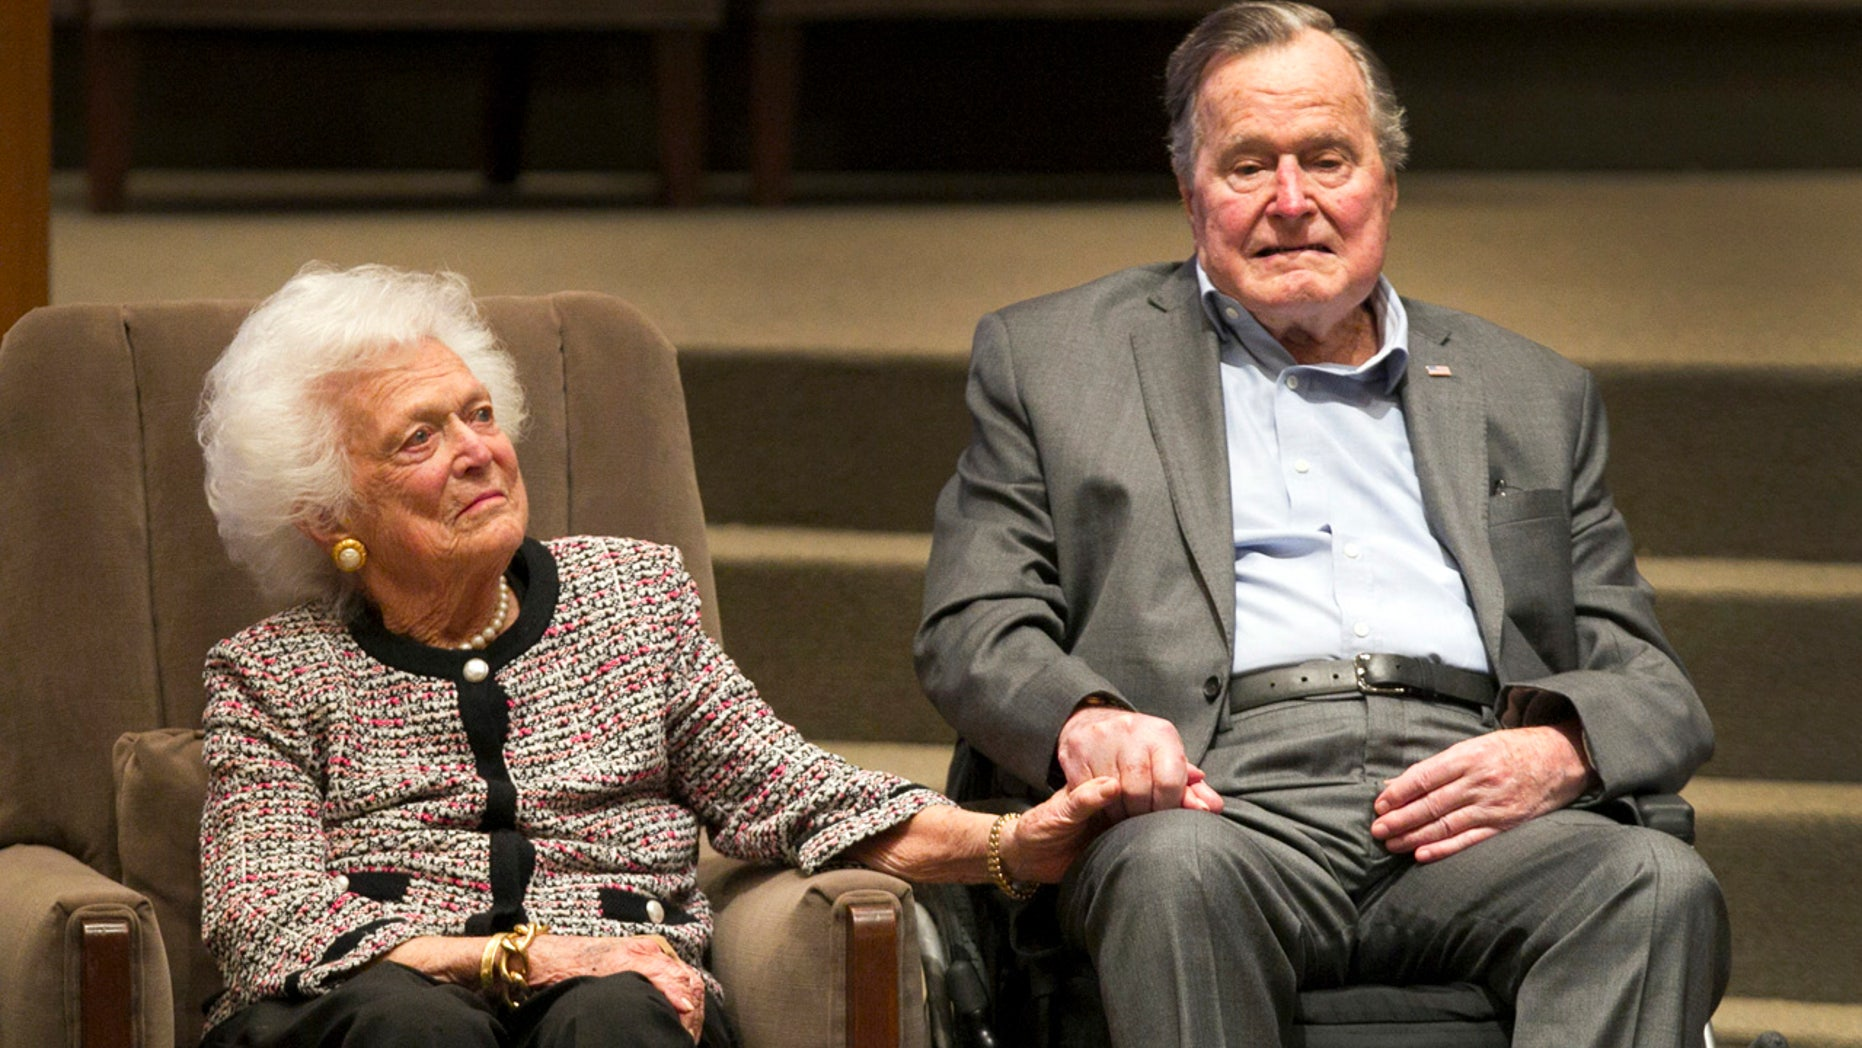 In this March 8, 2017, file photo, former President George H.W. Bush and former first lady Barbara Bush attend an awards ceremony hosted by Congregation Beth Israel after the Mensch International Foundation presented its annual Mensch Award to the former president in Houston.